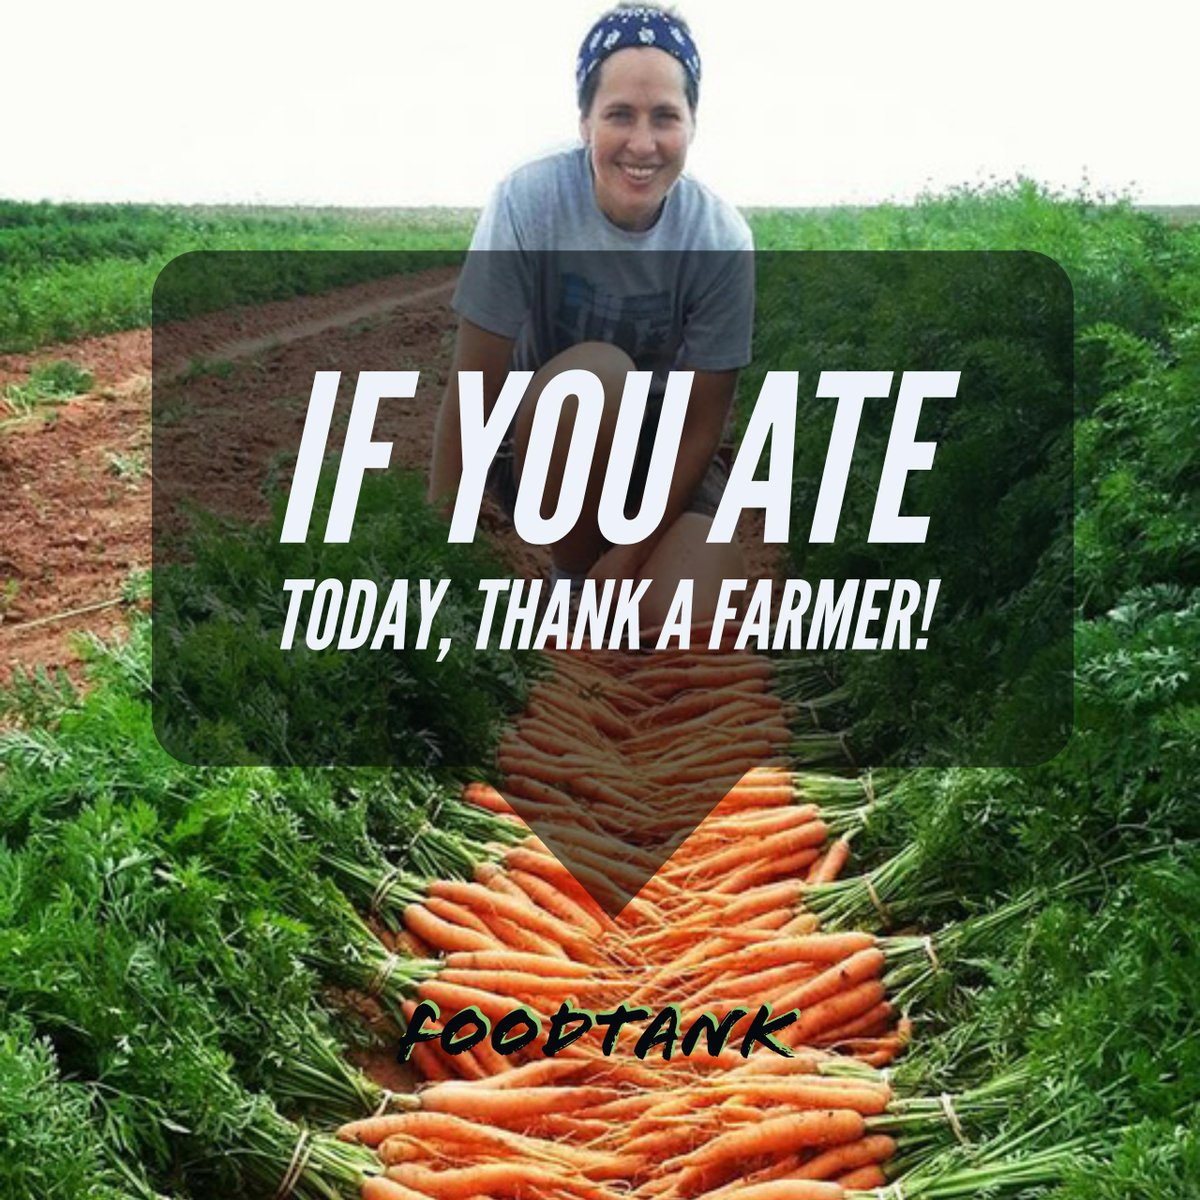 If you ate today, thank a farmer AND share this tweet! #FoodTank https://t.co/6wZmkA9fjz